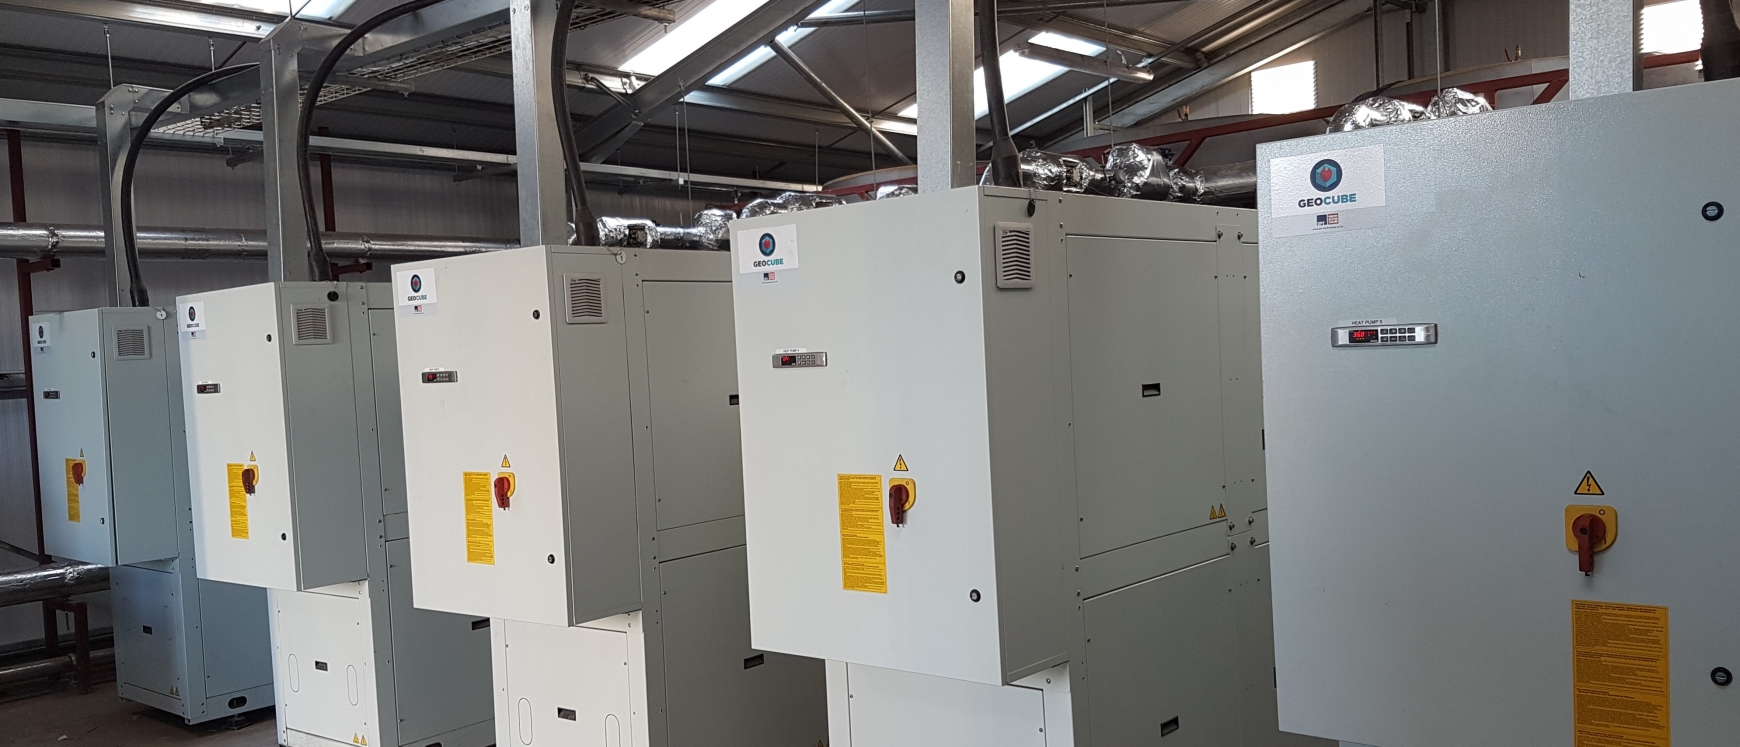 Five heat pumps in a large shed